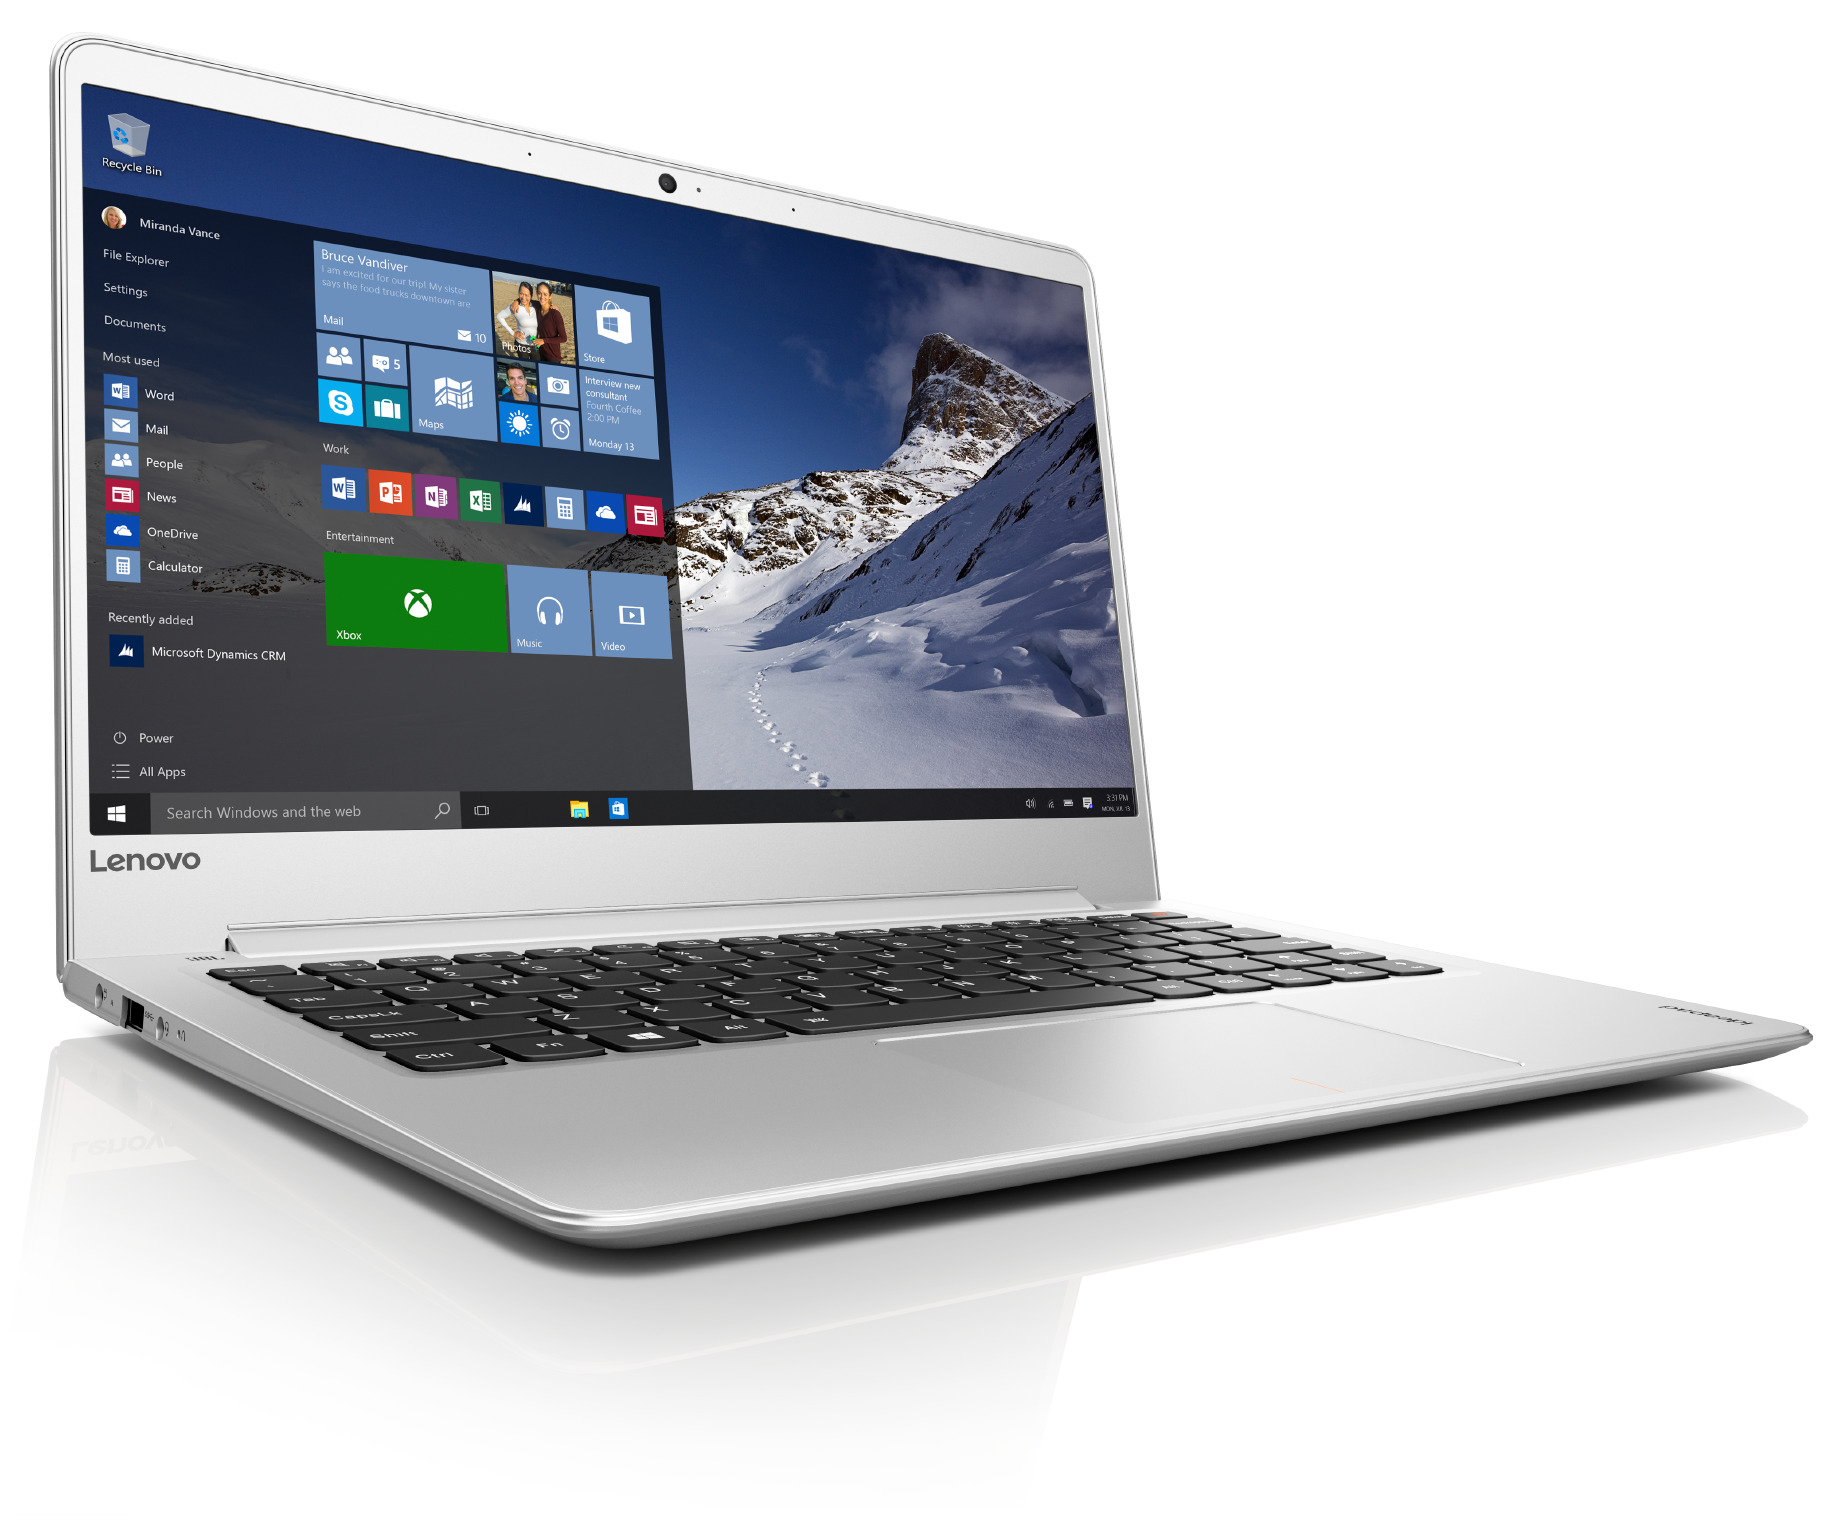 "Lenovo IdeaPad 710S PLUS-13IKB i7-7500U 3,50GHz/8GB/SSD 512GB/13,3"" FHD/IPS/AG/GeForce 2GB/WIN10 PRO stříbrná 80W3003QCK"